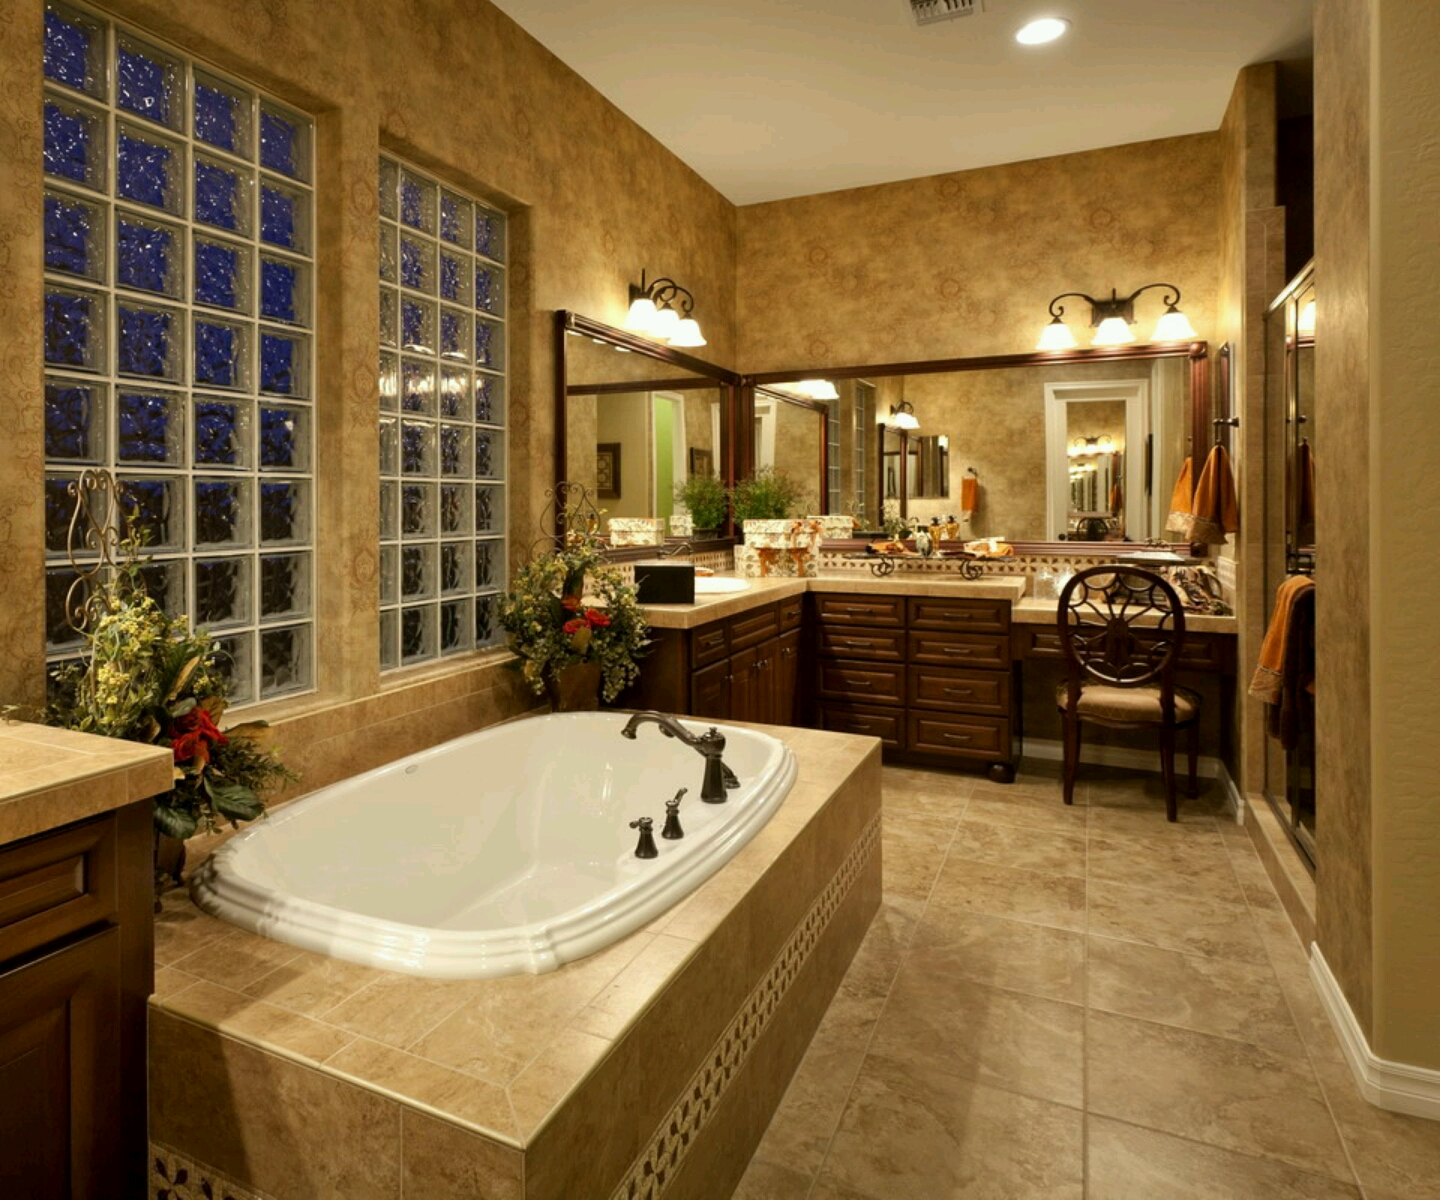 St louis kitchen bathroom remodeling Bathroom remodel design